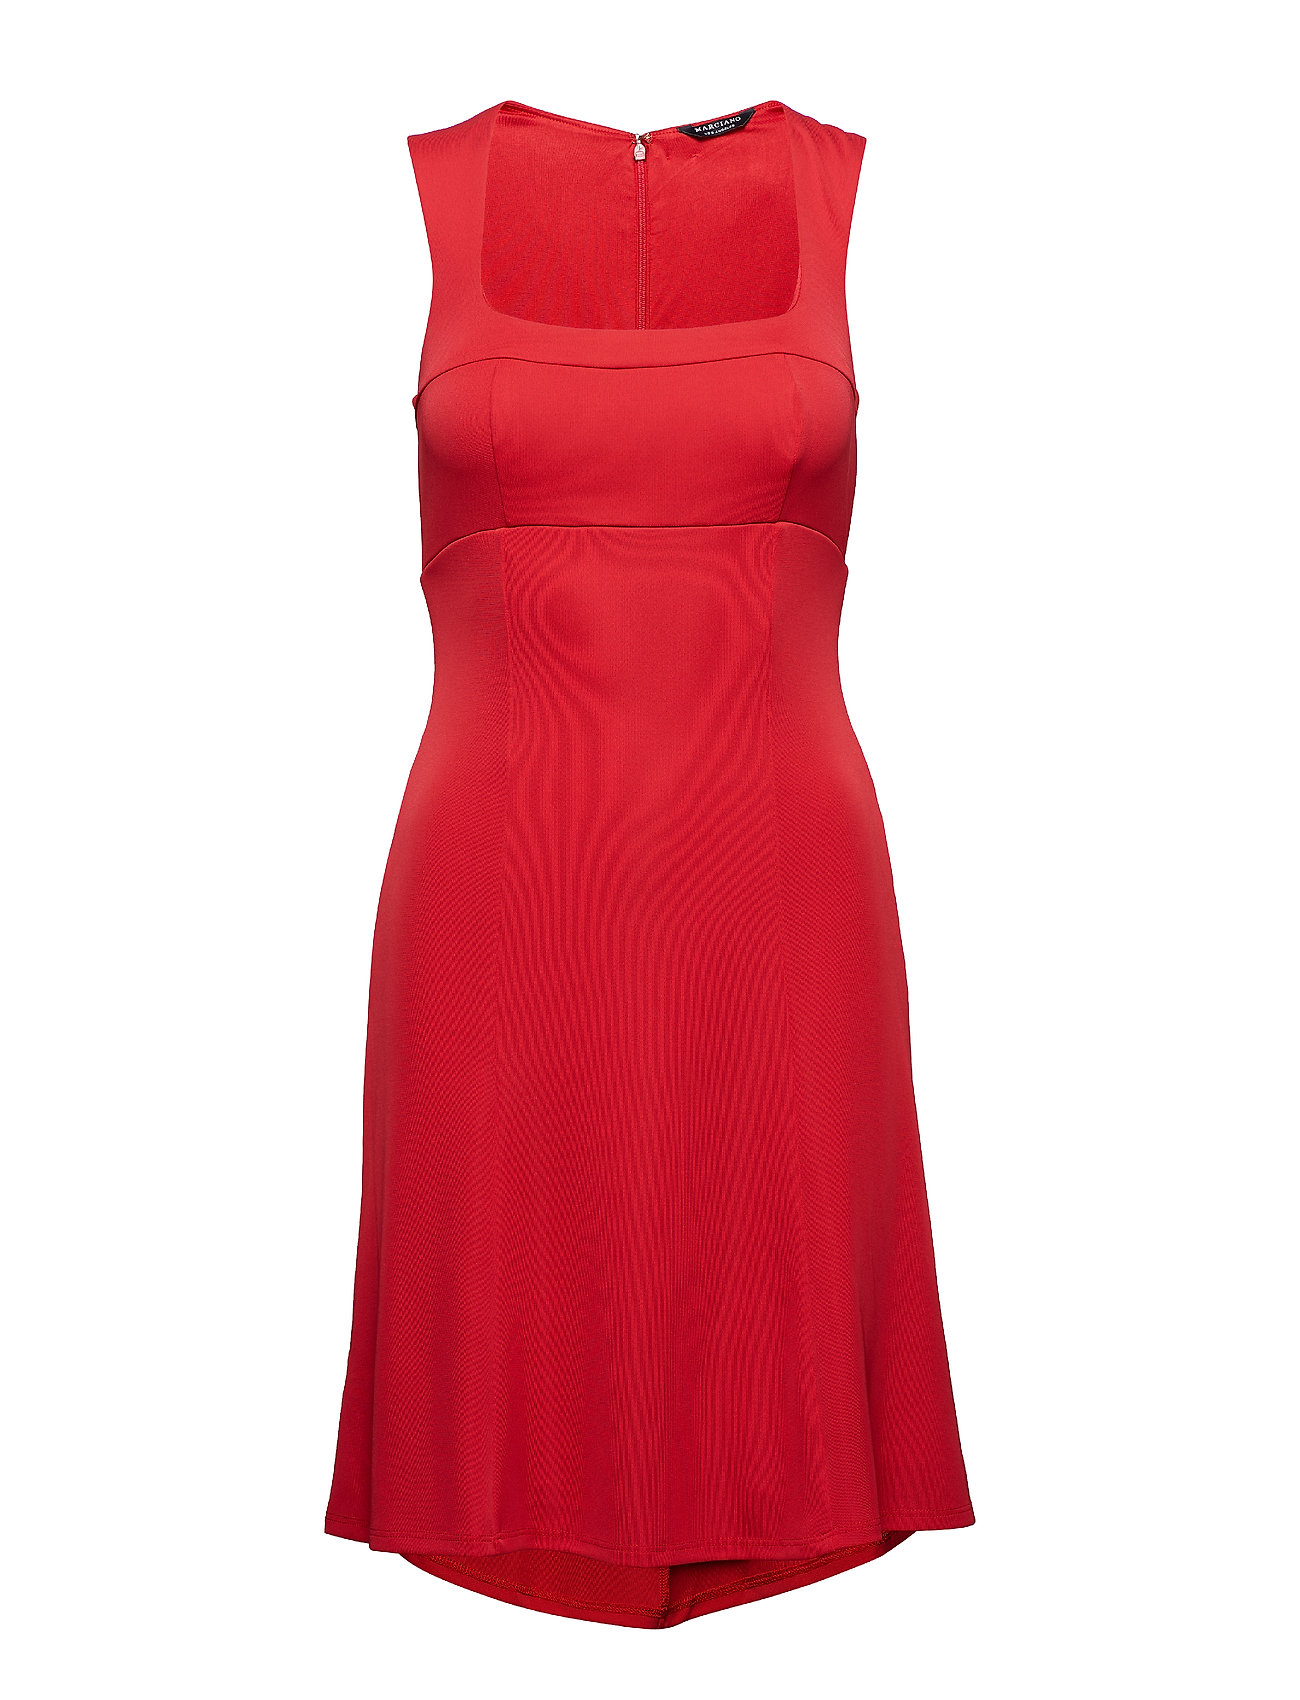 Marciano by GUESS DREAMER DRESS - CHERRY PUNCH